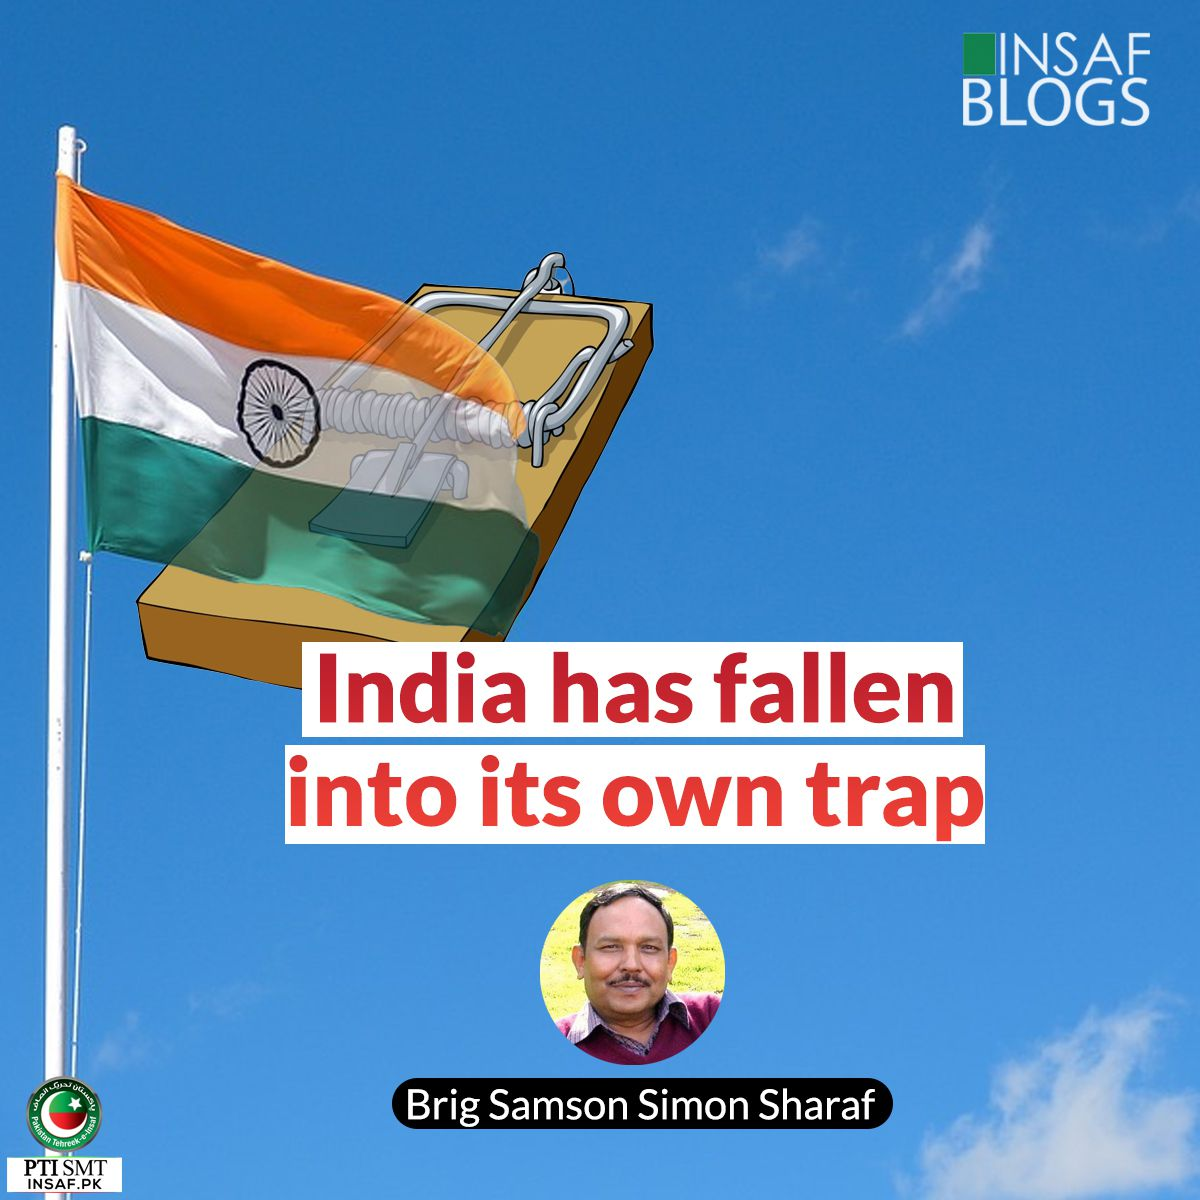 India has fallen into its own trap - Insaf Blog